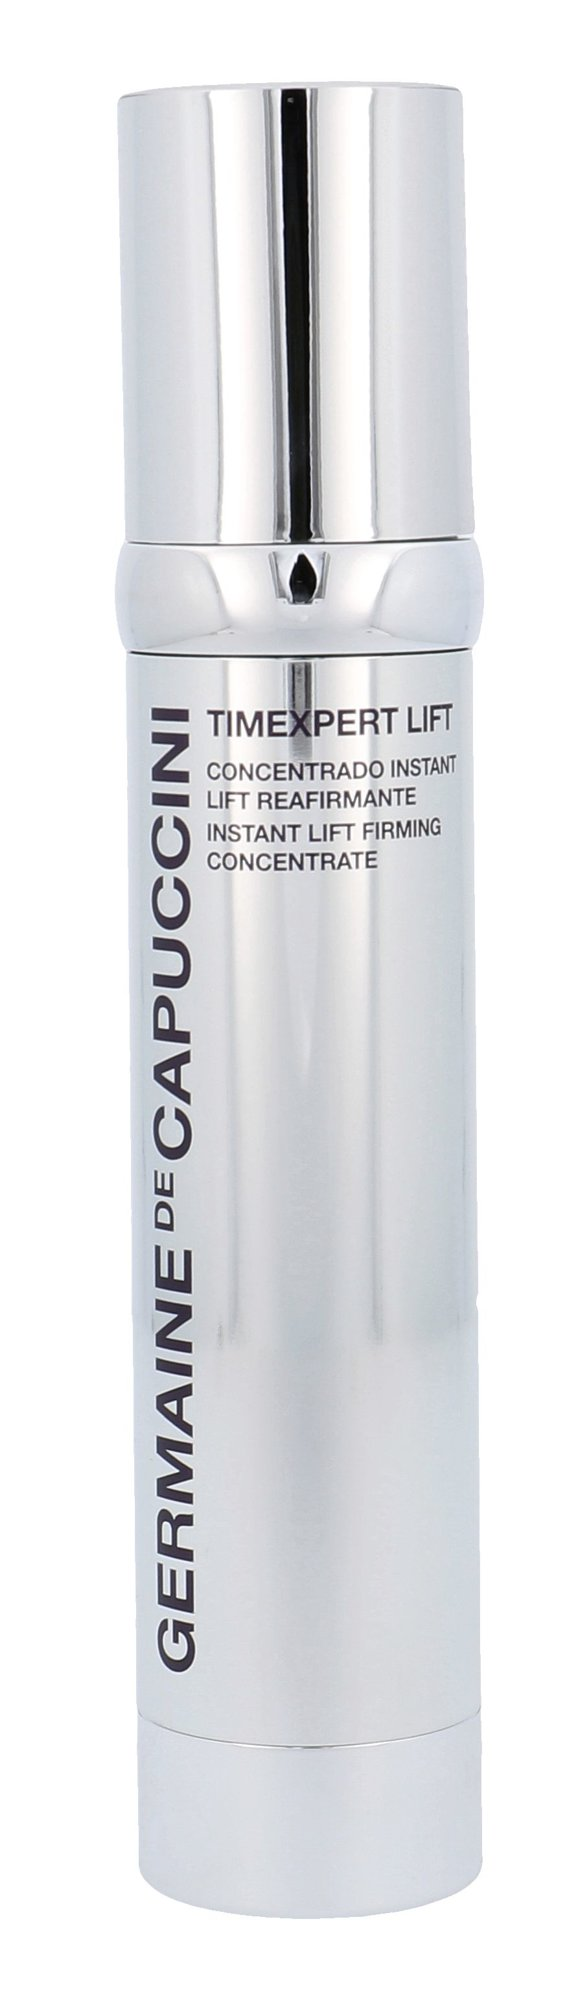 Germaine de Capuccini Timexpert Lift Instant Lift Firming Concentrate Cosmetic 50ml